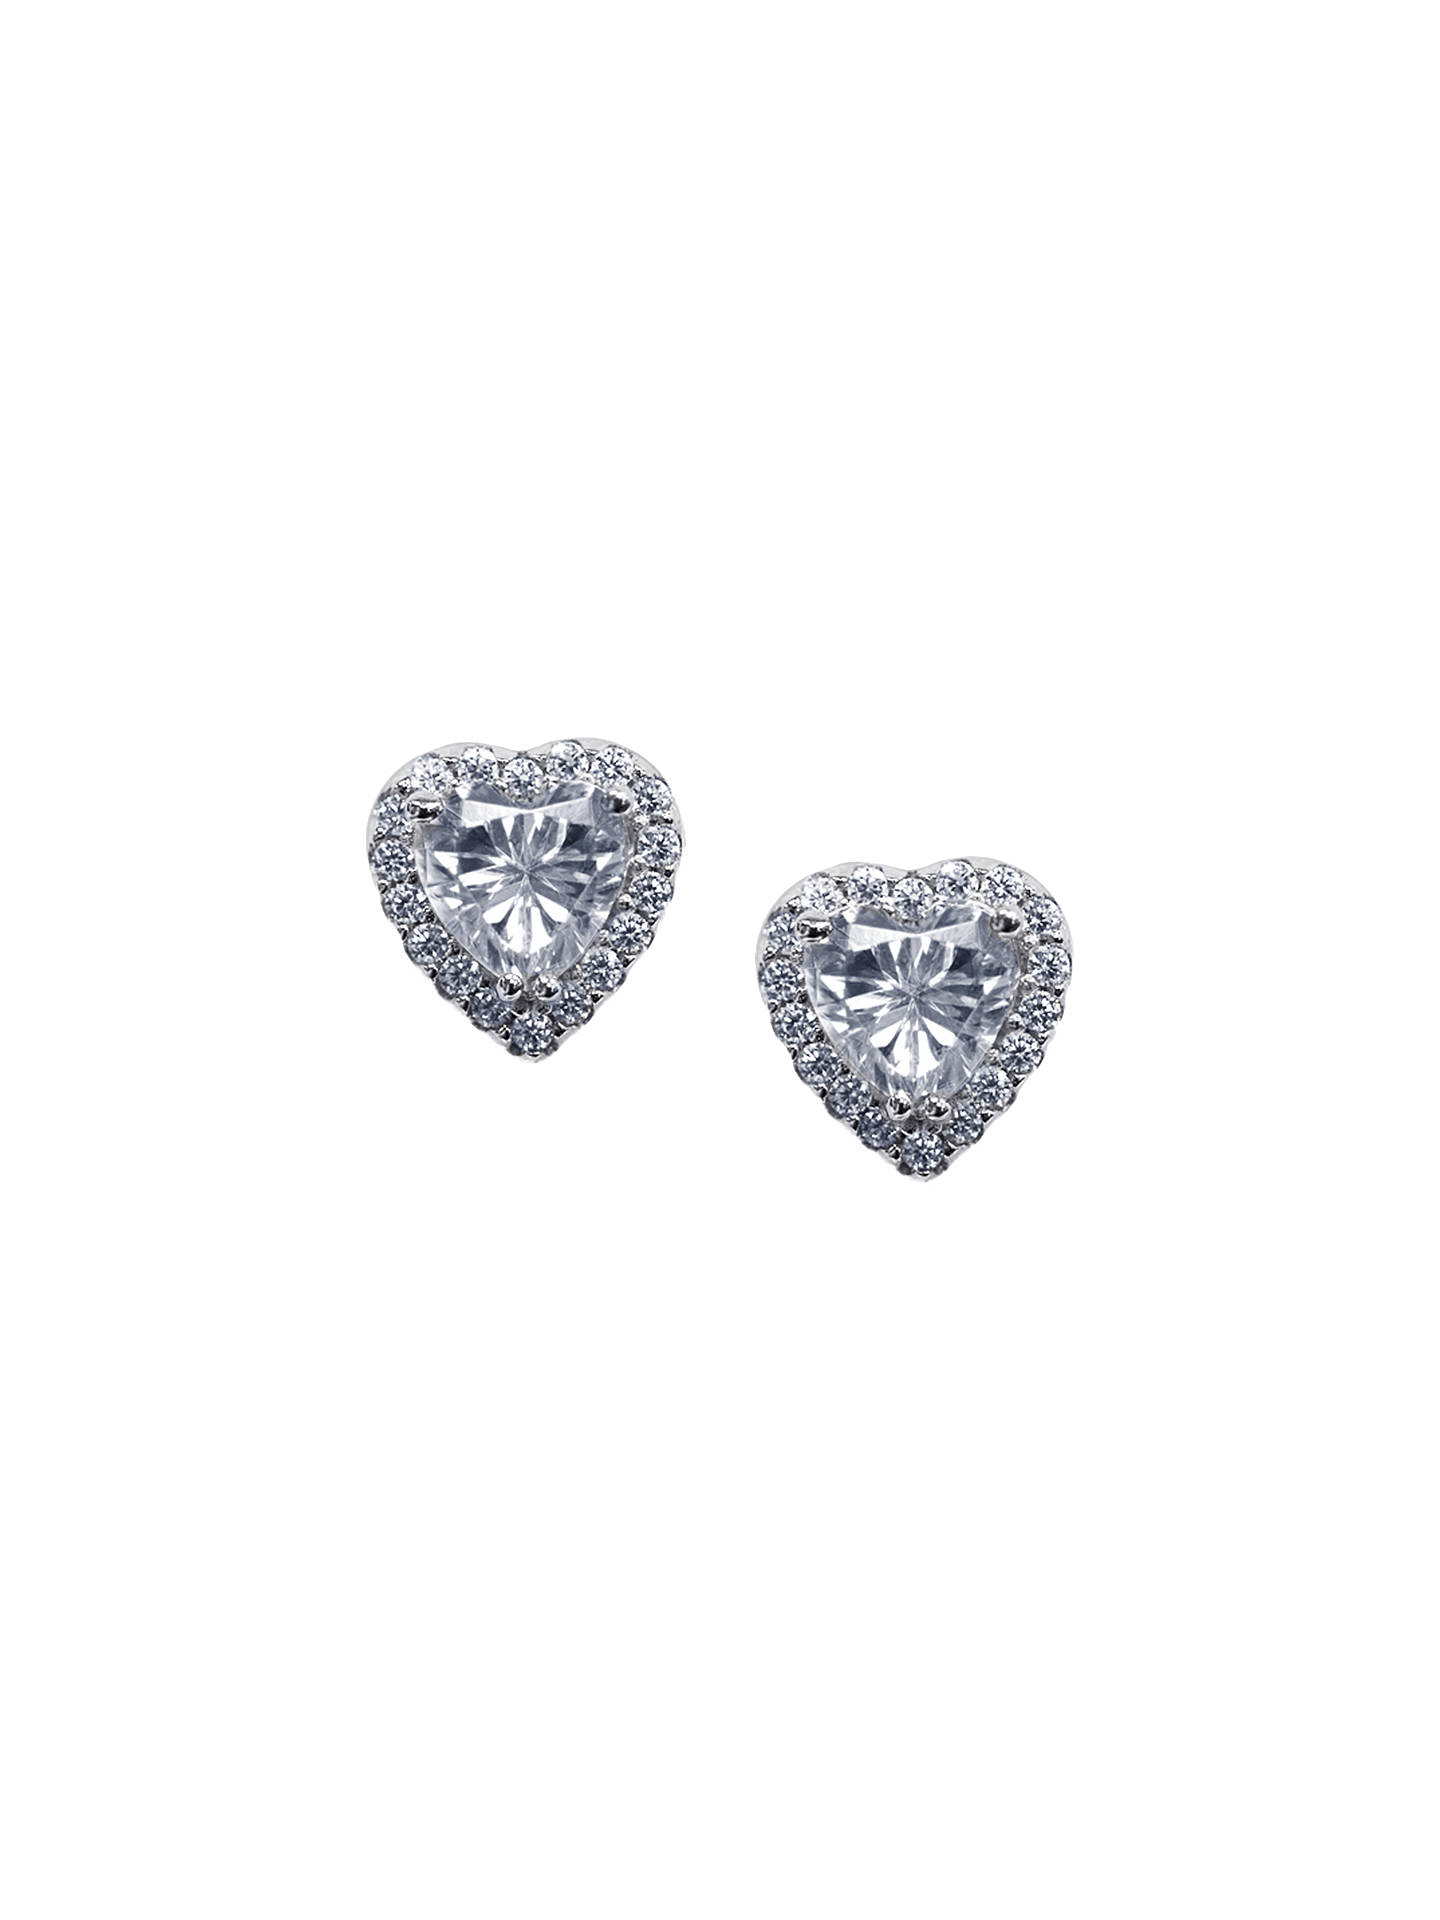 BuyCARAT  London Cora Sterling Silver Heart Stud Earrings ce909a1ce44b